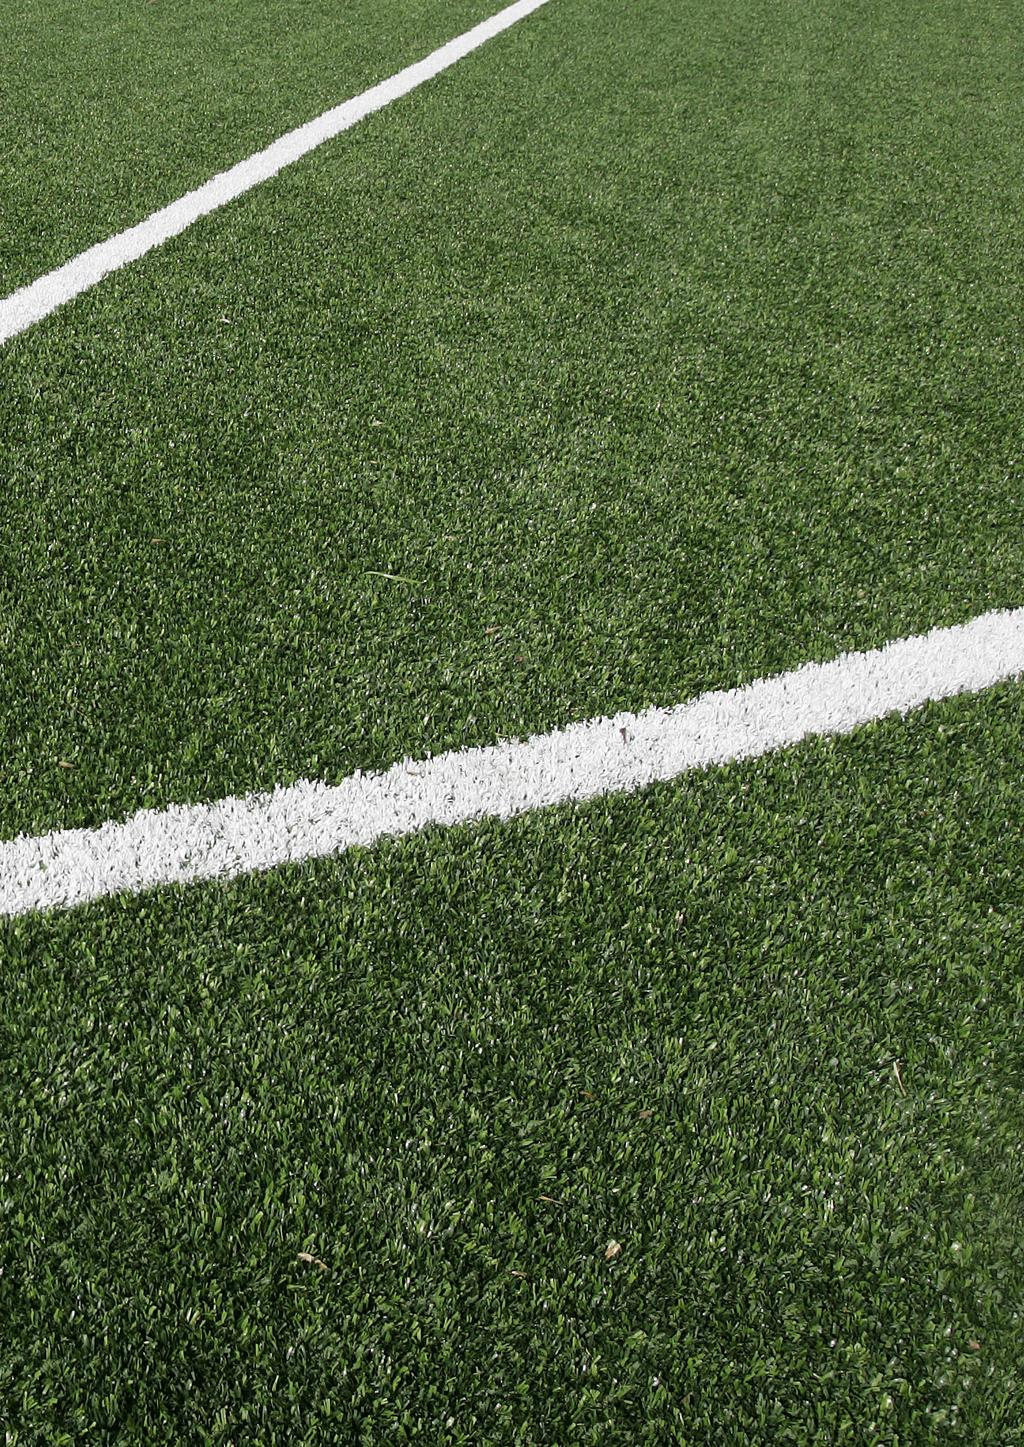 study background this article summarises the outcome of an 18 month study commissioned by fifa and supported by fifpro aimed at determining elite players perceptions of football playing surfaces.